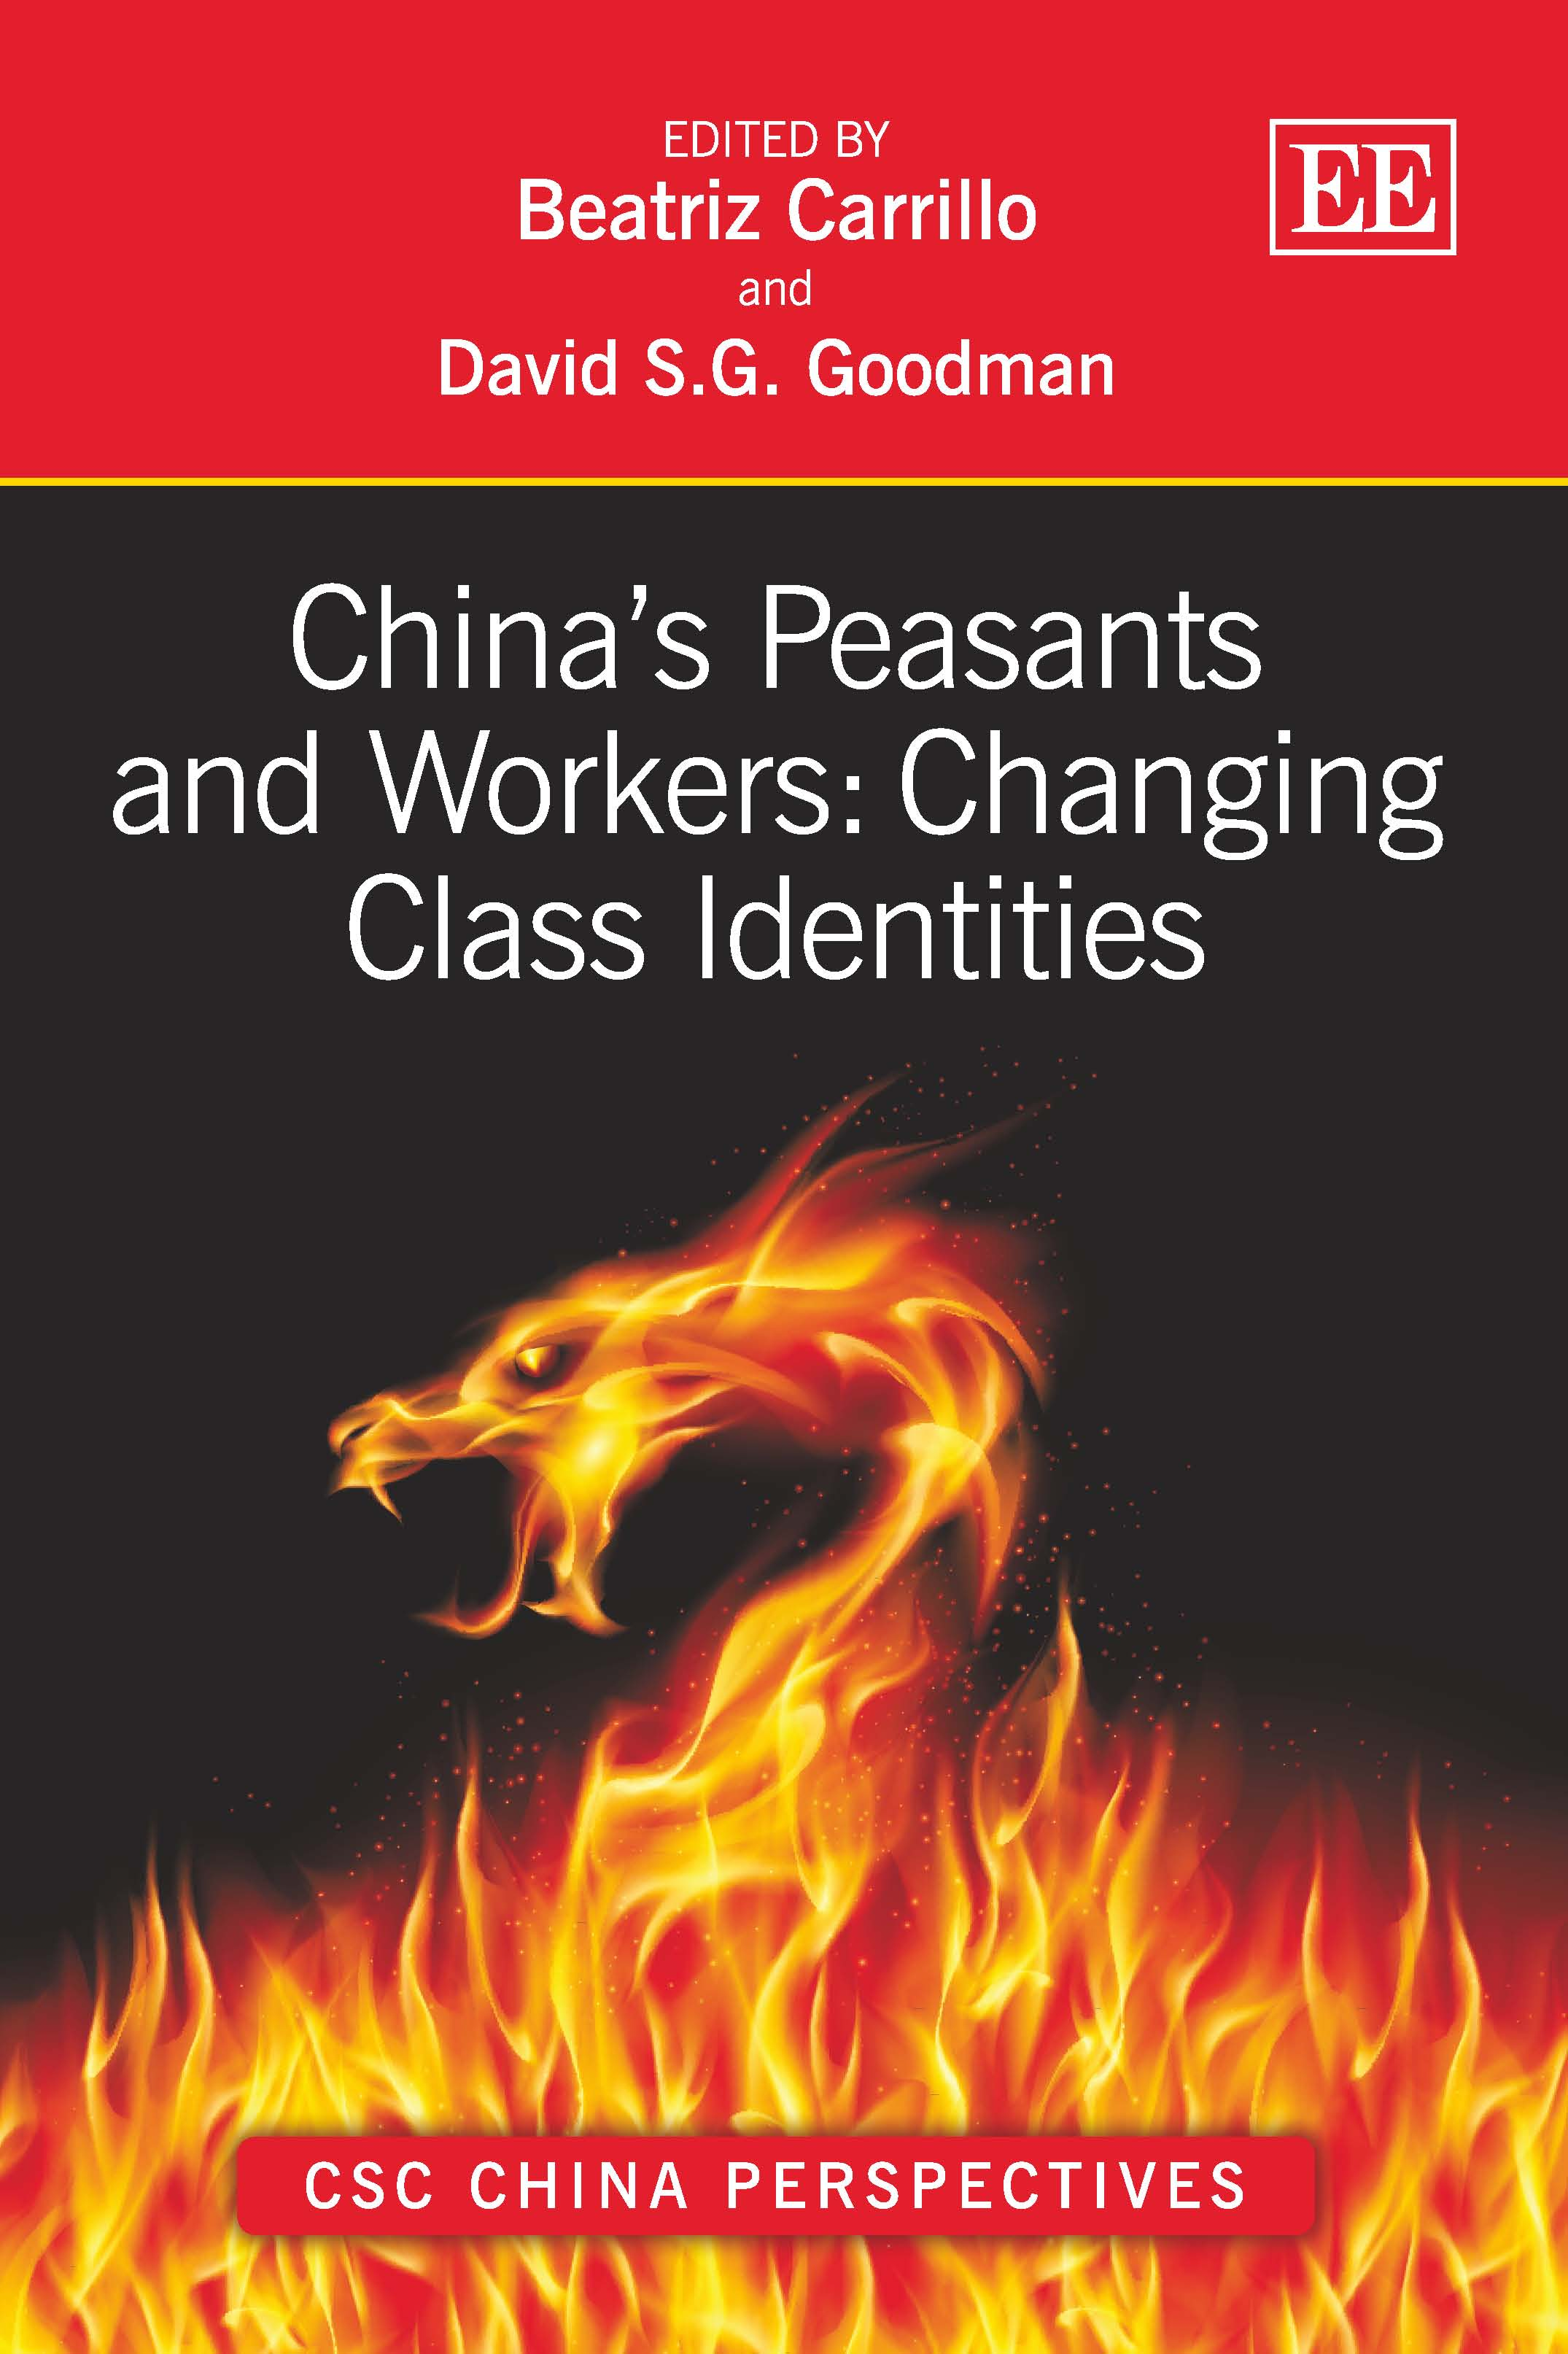 China's Peasants and Workers: Changing Class Identities